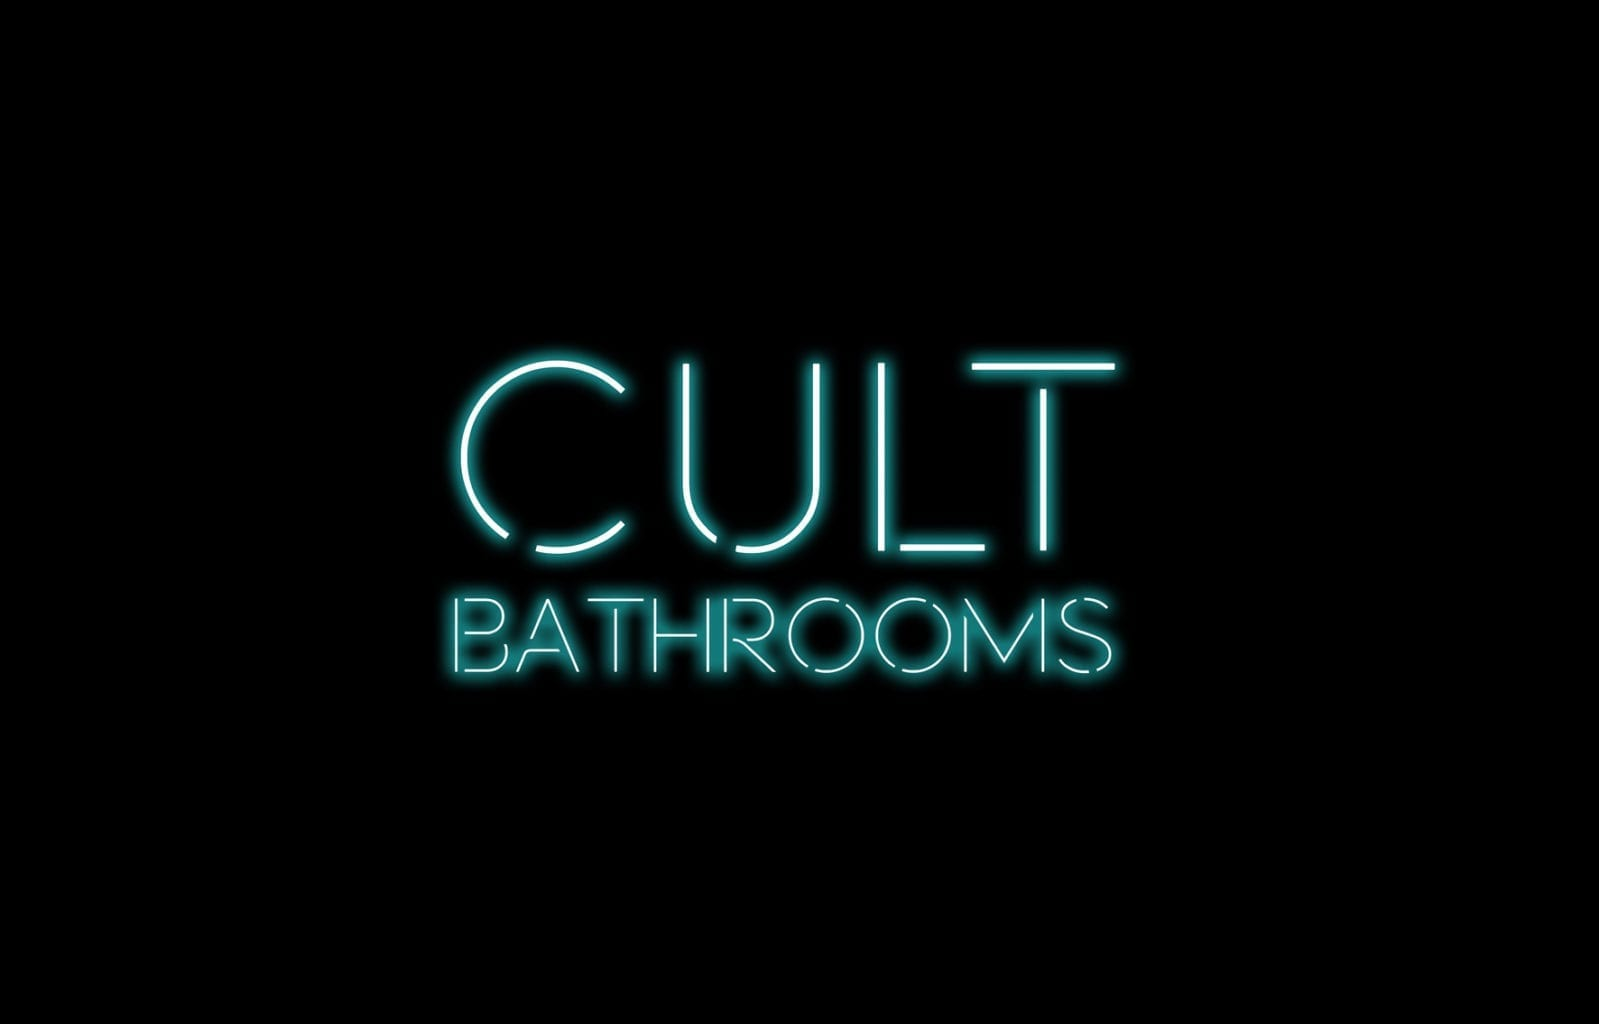 domenico_orefice_design_studio_branding_globo_cult_bathrooms_milan_week_2017_05